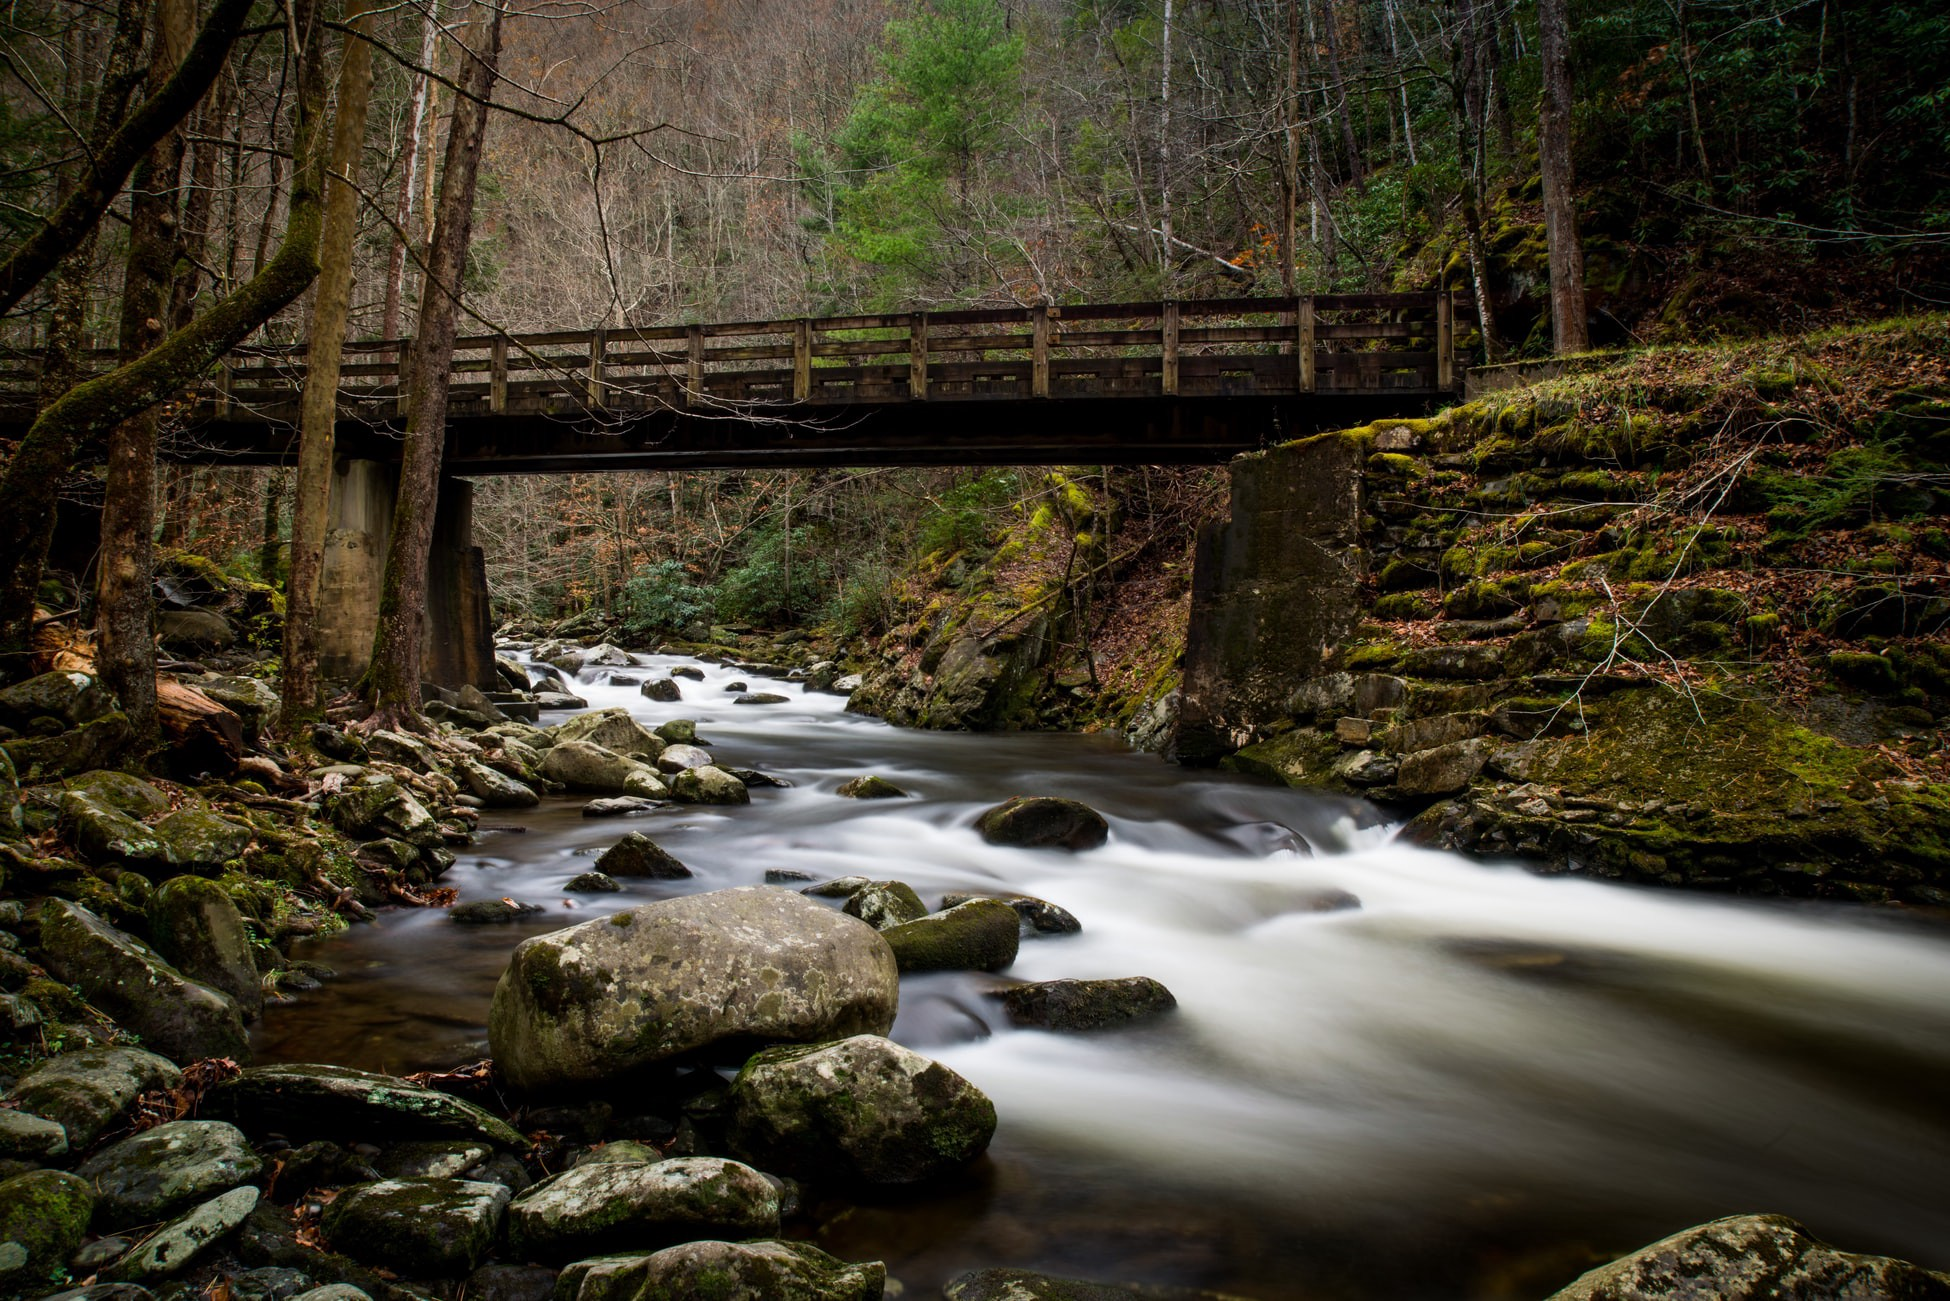 A stream flowing under a bridge in the woods